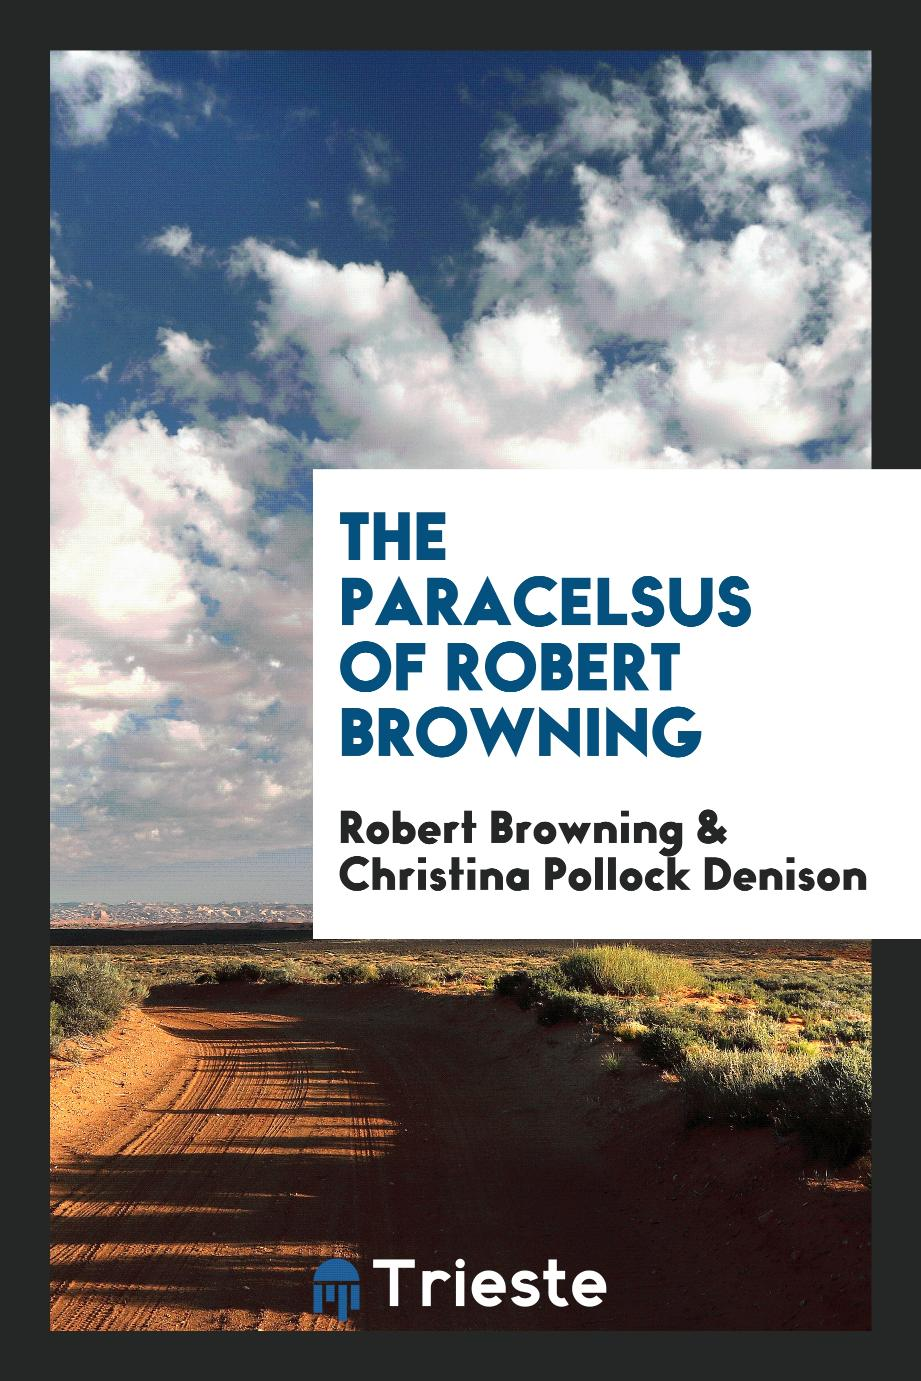 The Paracelsus of Robert Browning